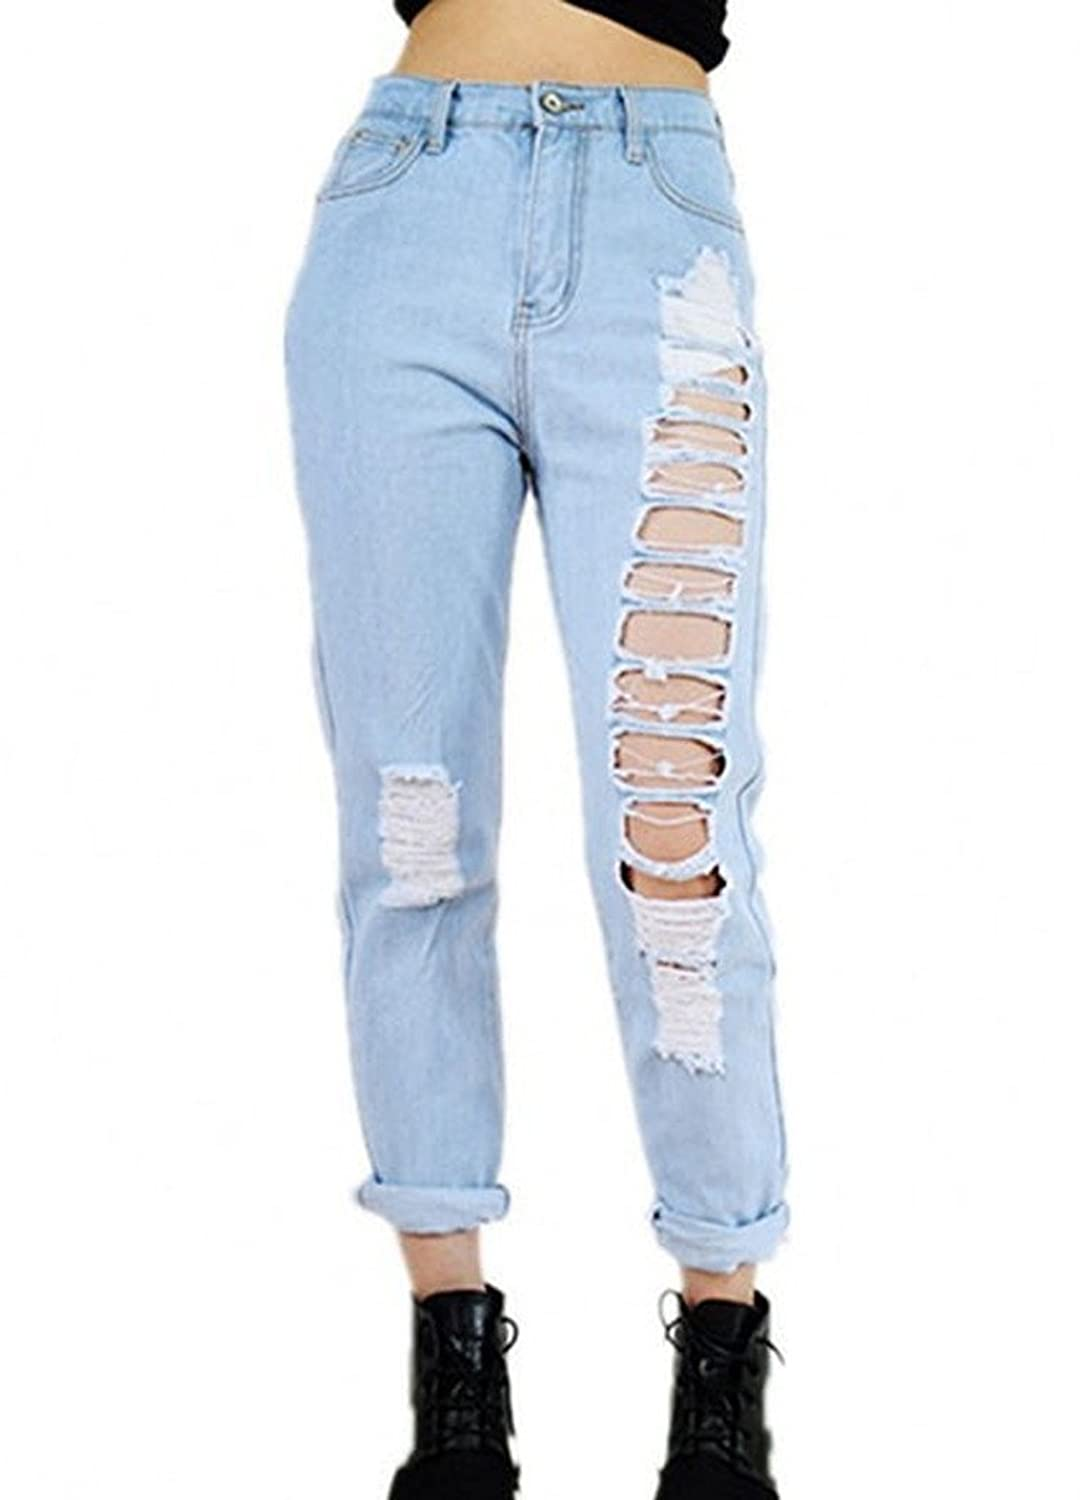 Sunfan Women's Sexy Destroyed Hole Jeans Ripped Washed Straight Denim Trousers